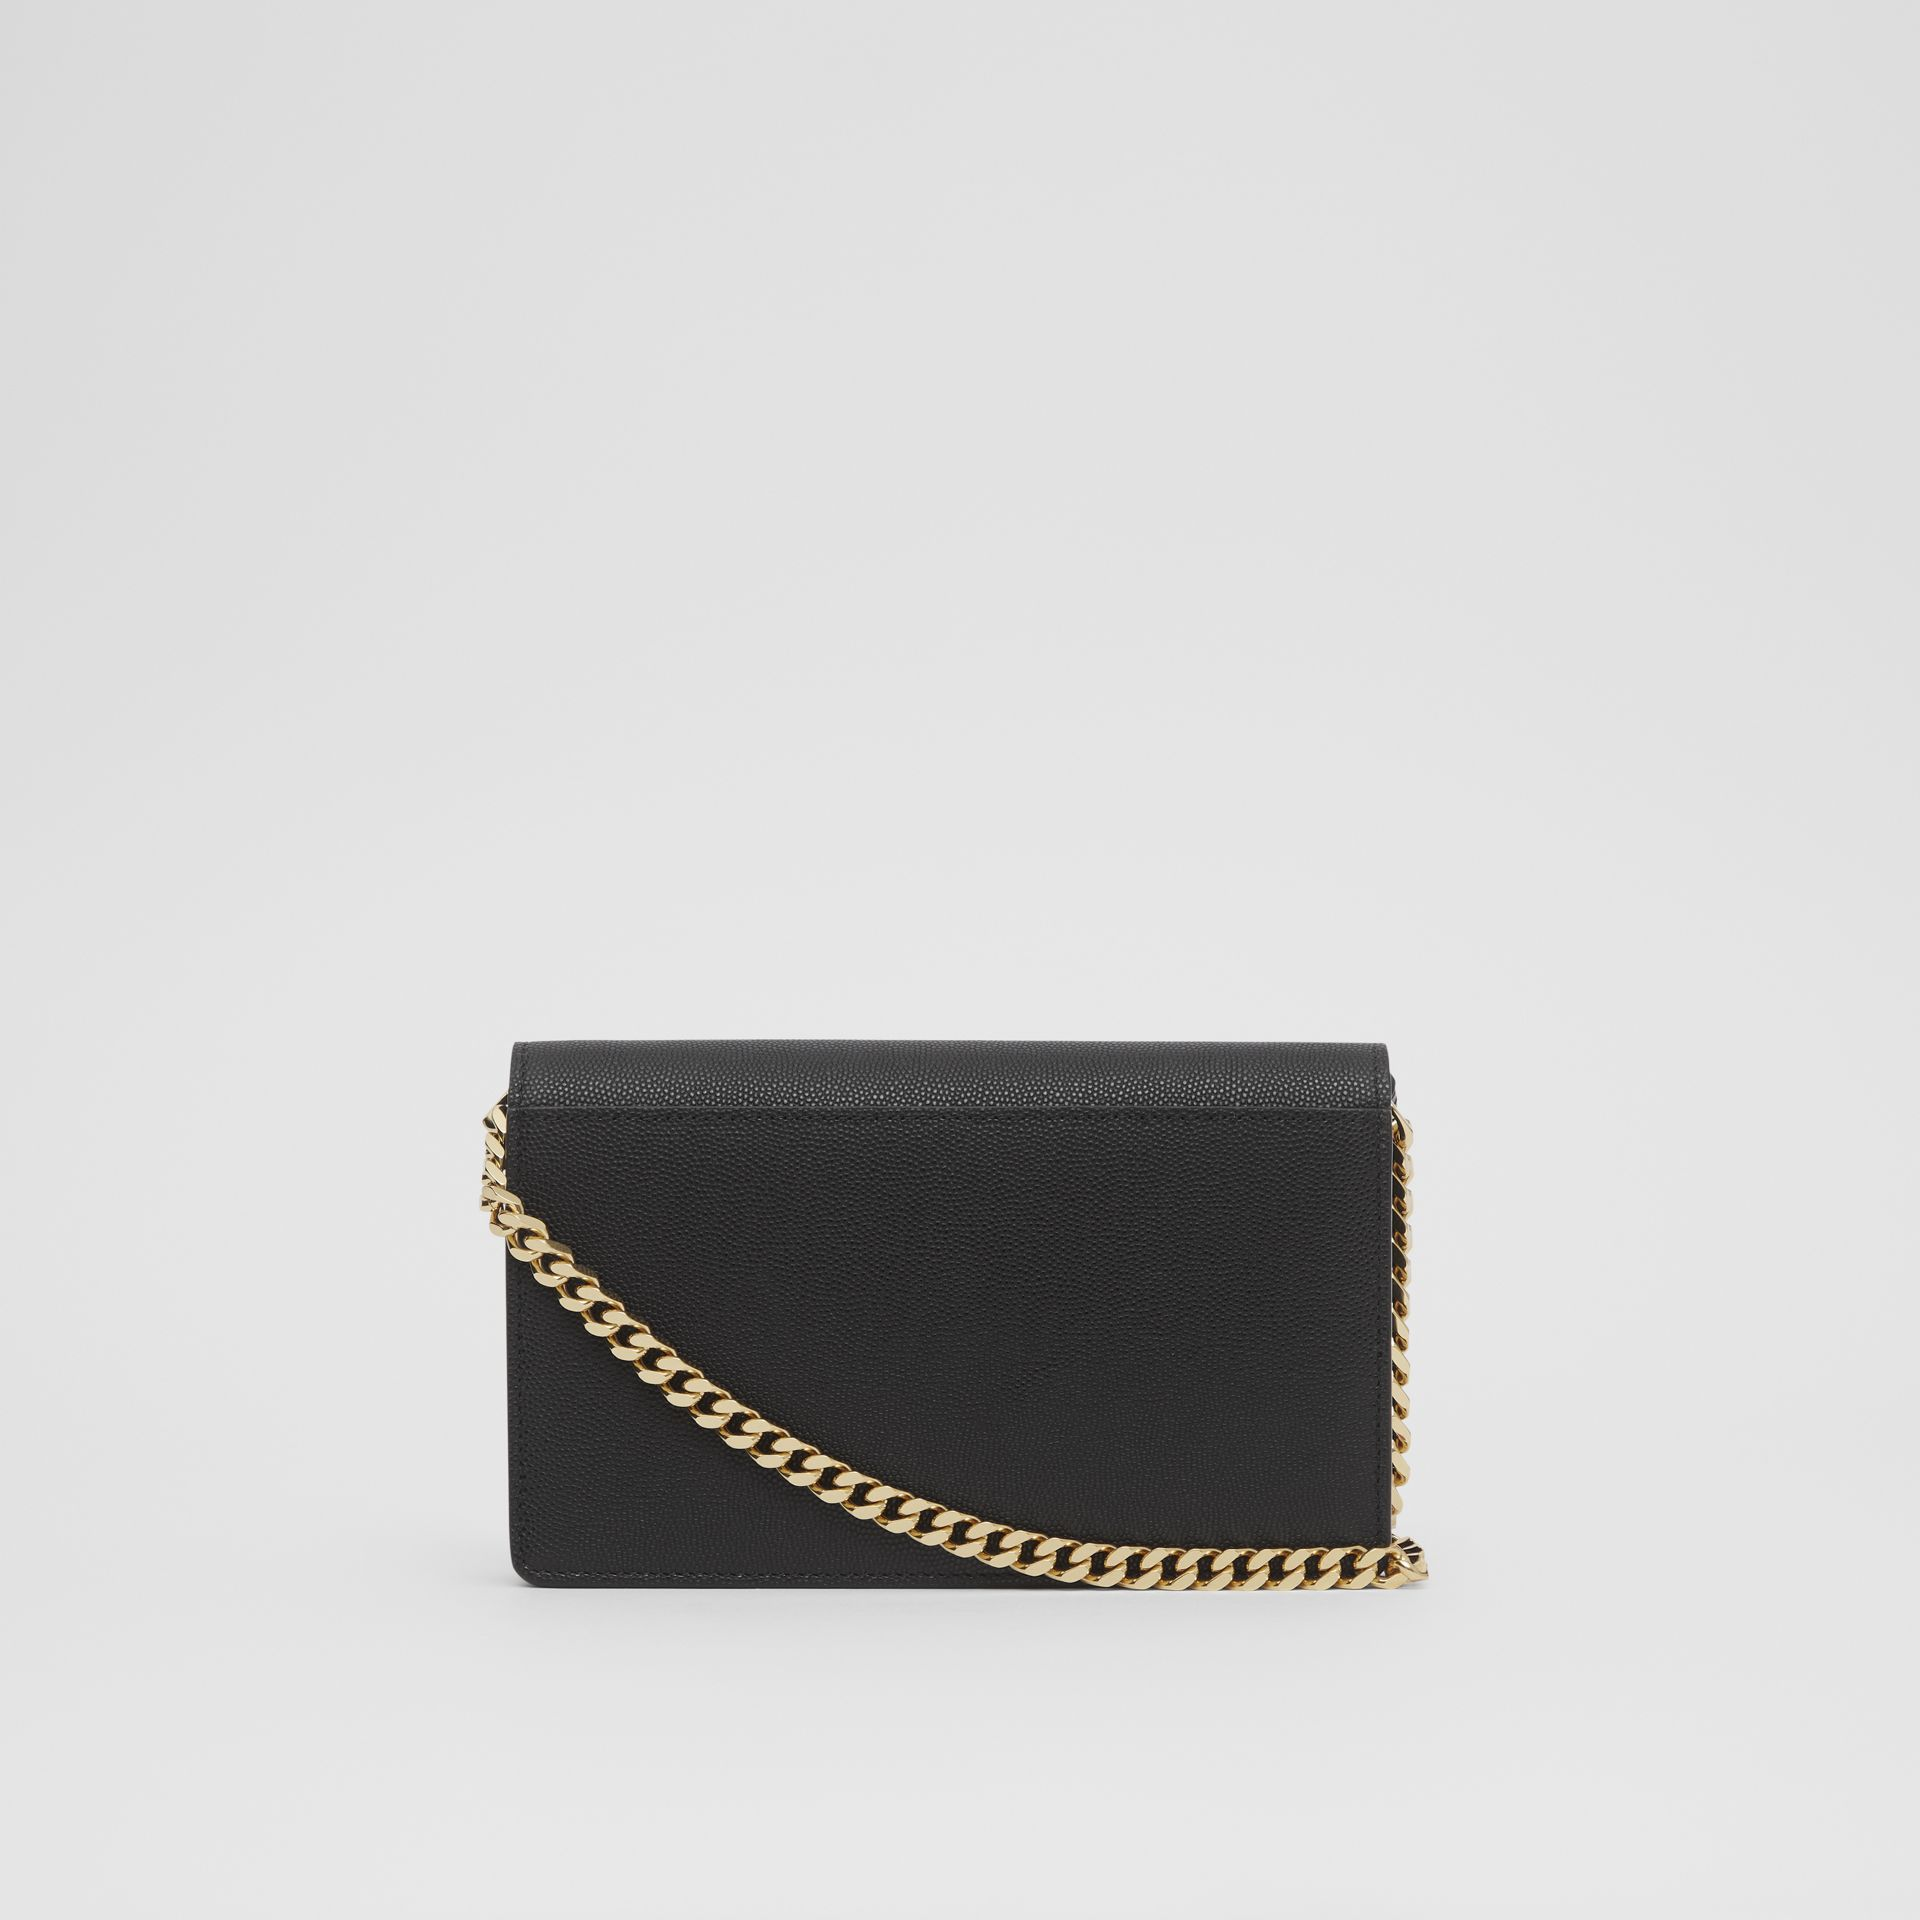 Small Grainy Leather Shoulder Bag in Black - Women | Burberry United Kingdom - gallery image 5